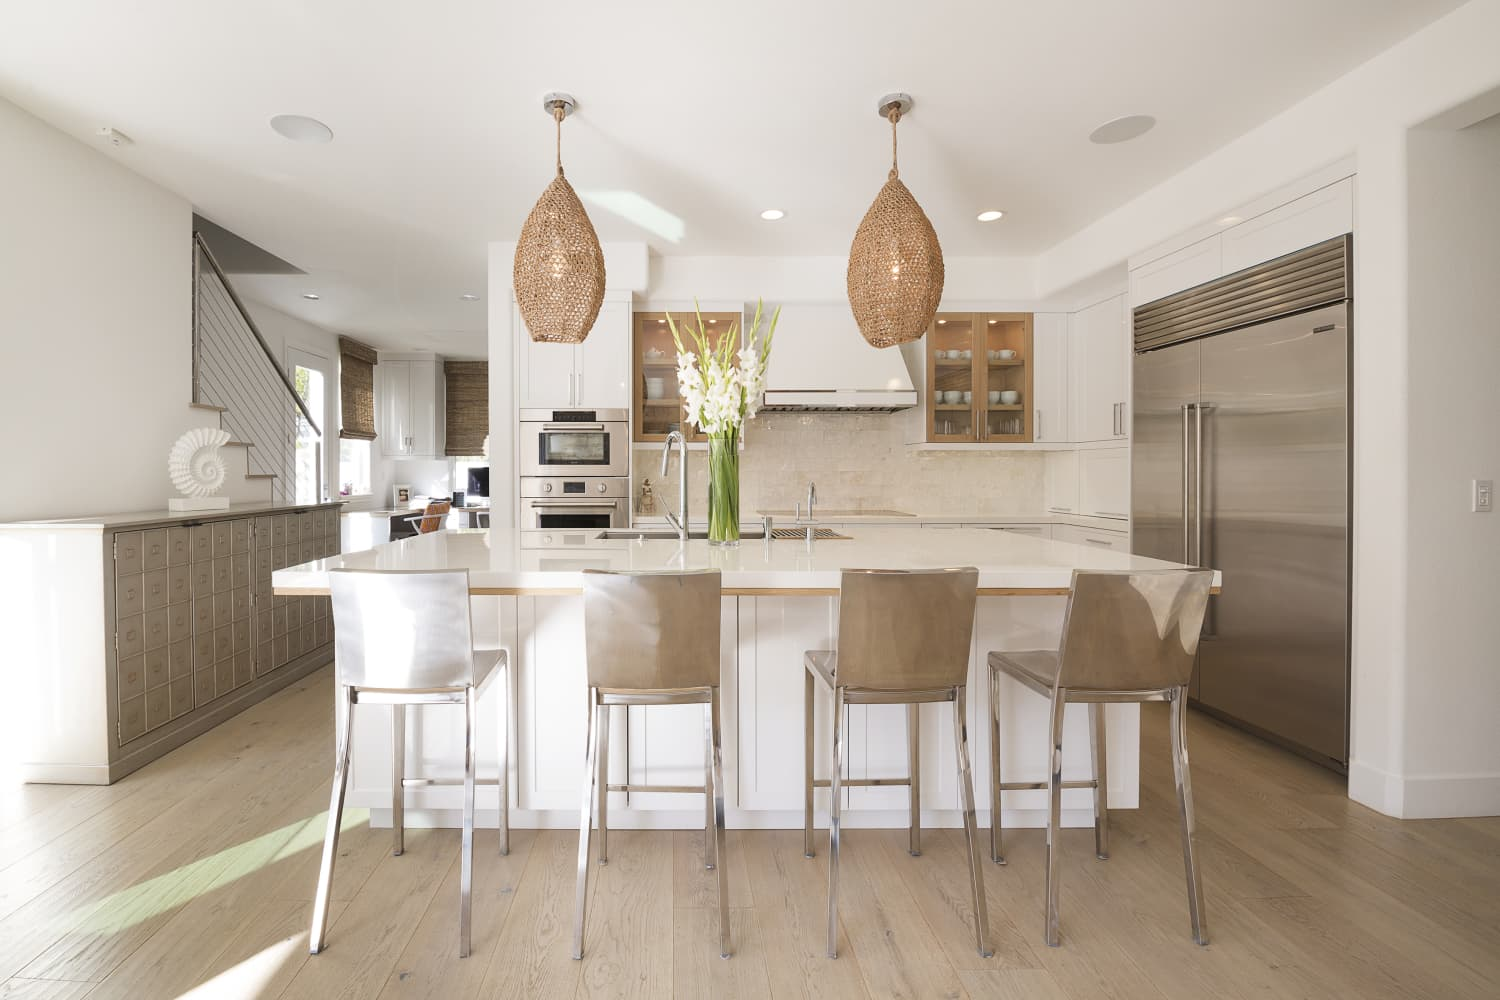 The One Thing You Should Definitely Do When Decorating Your Kitchen